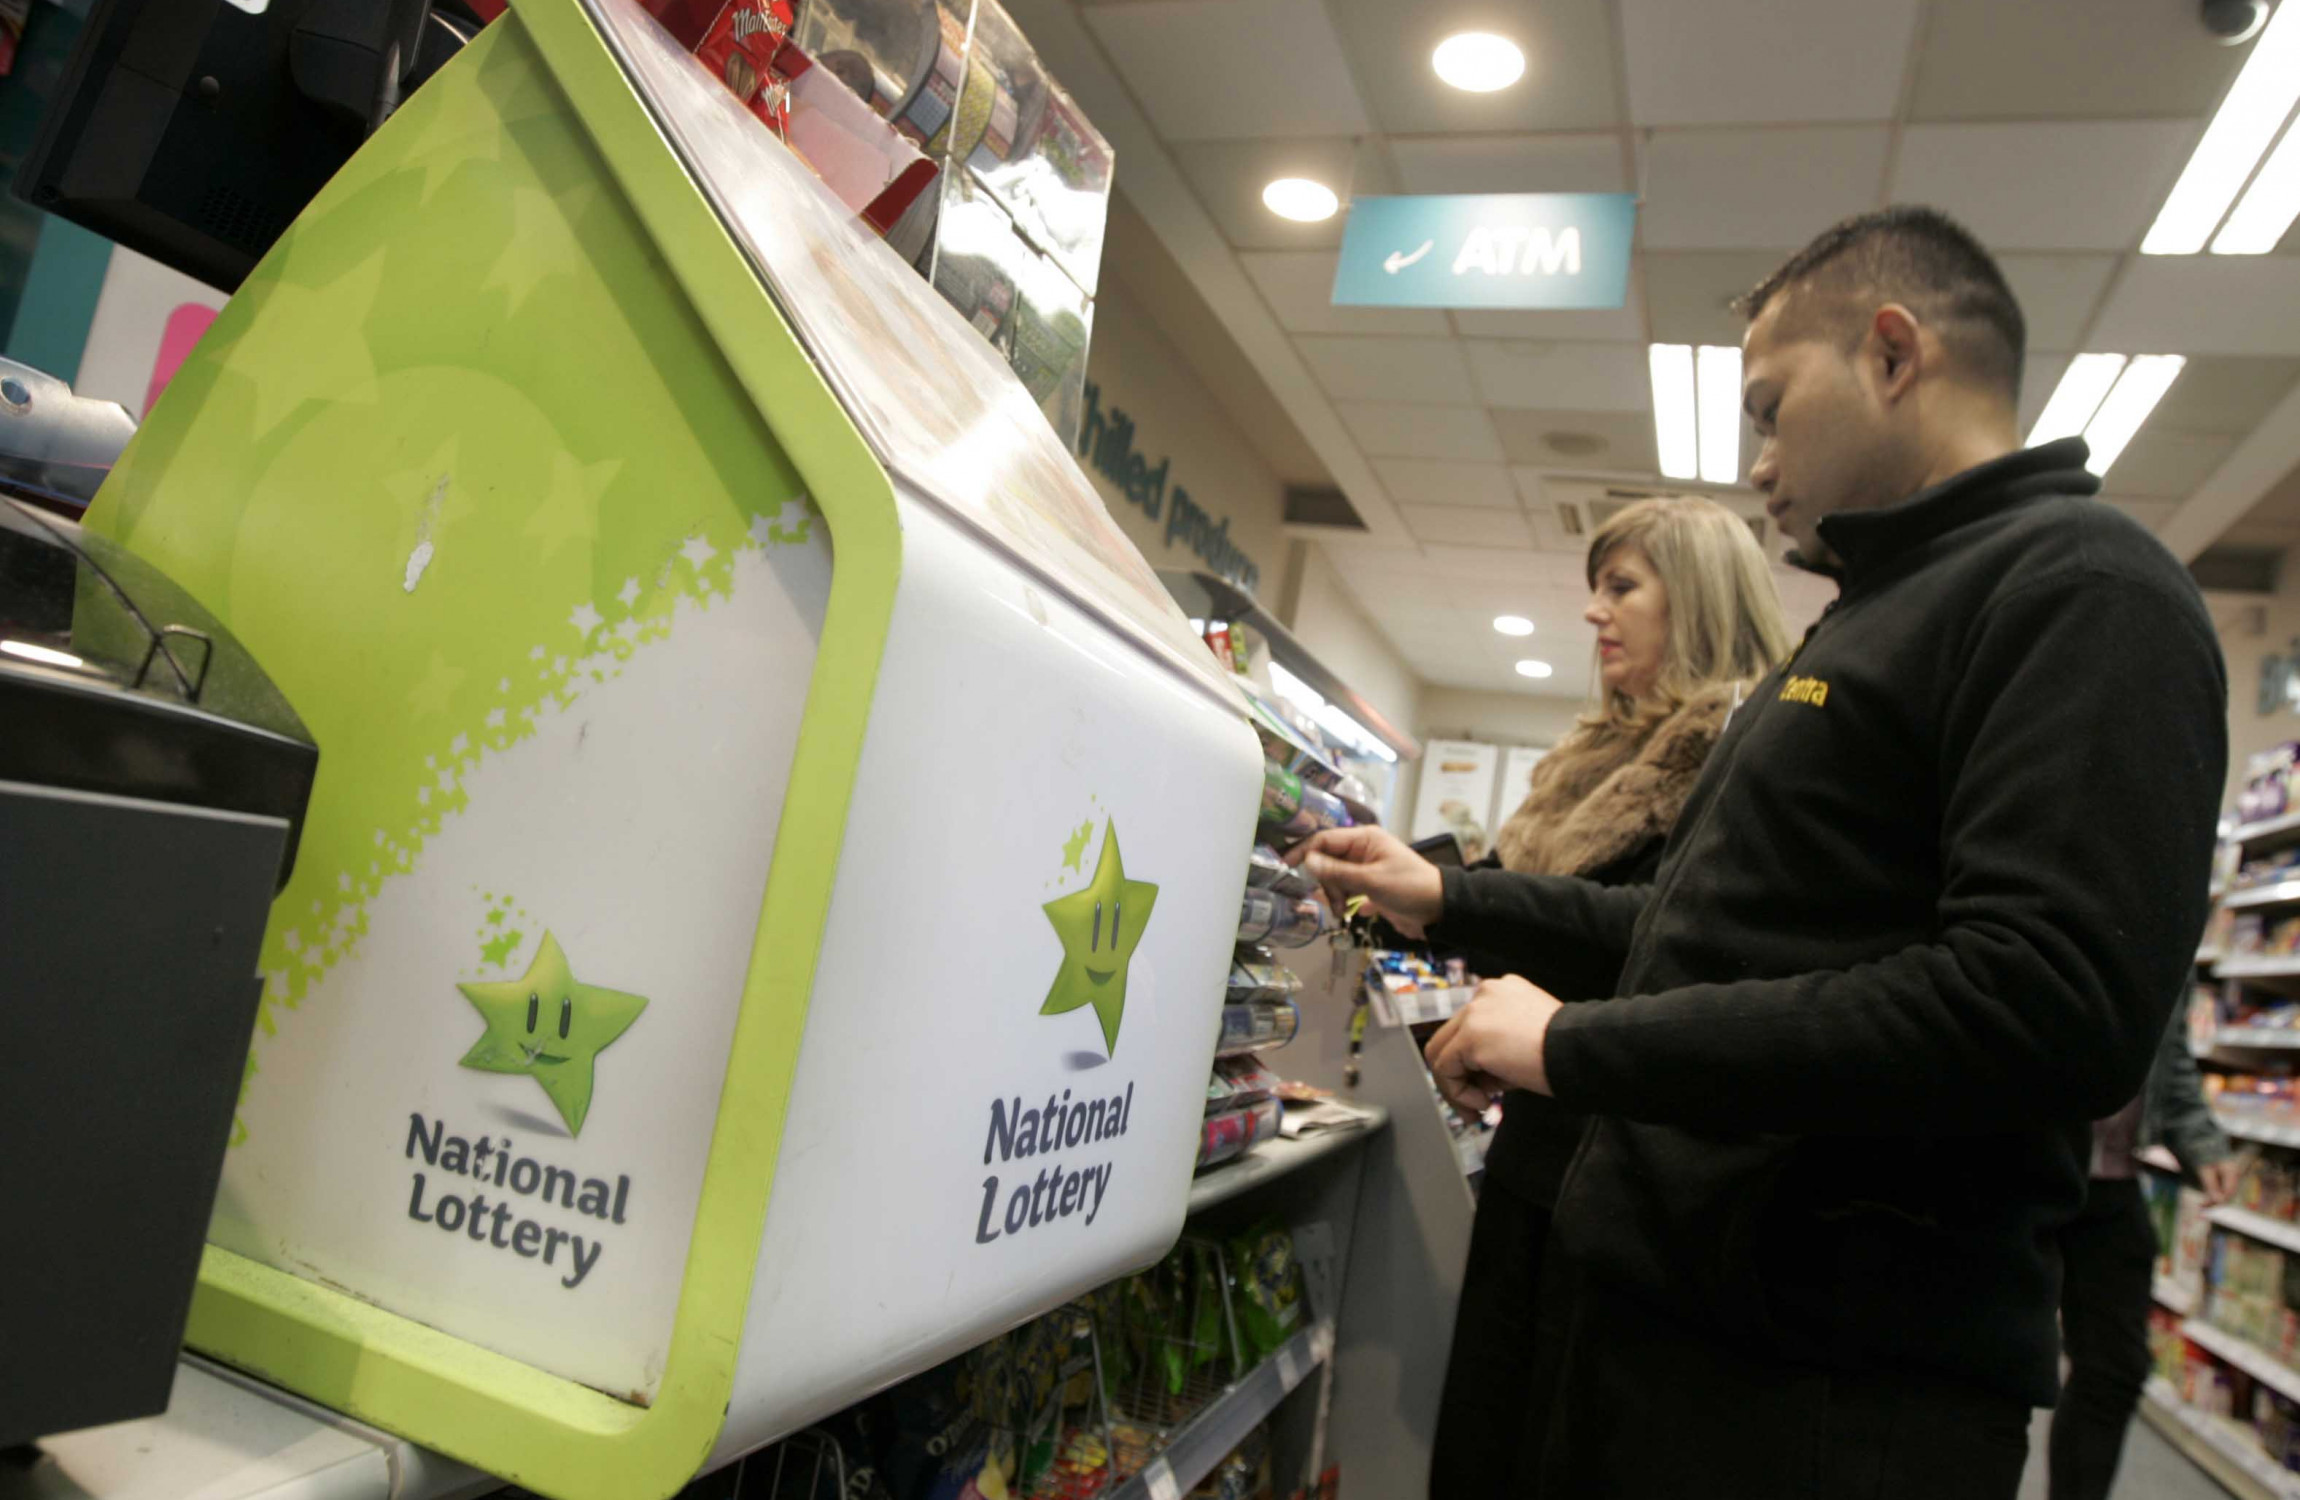 €39m Euromillions victor  has made contact with National Lottery